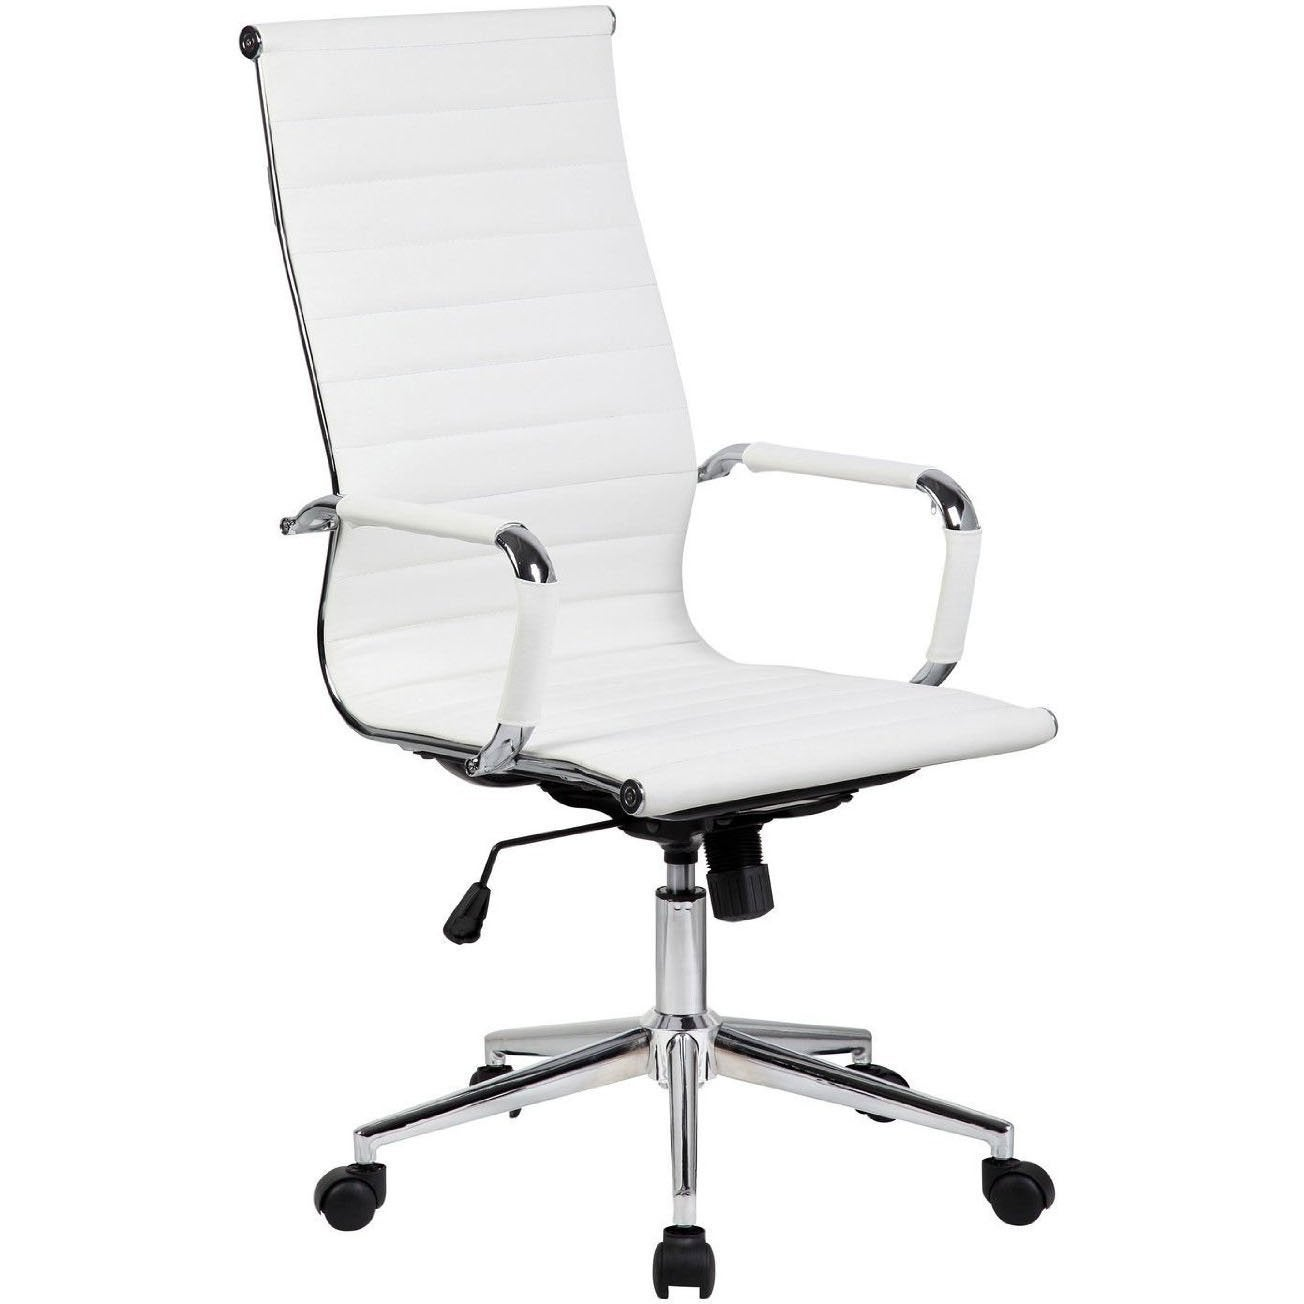 2xhome White Executive Ergonomic High Back Modern Office Chair Ribbed Pu Leather Swivel For Manager Conference Computer Desk On Free Shipping